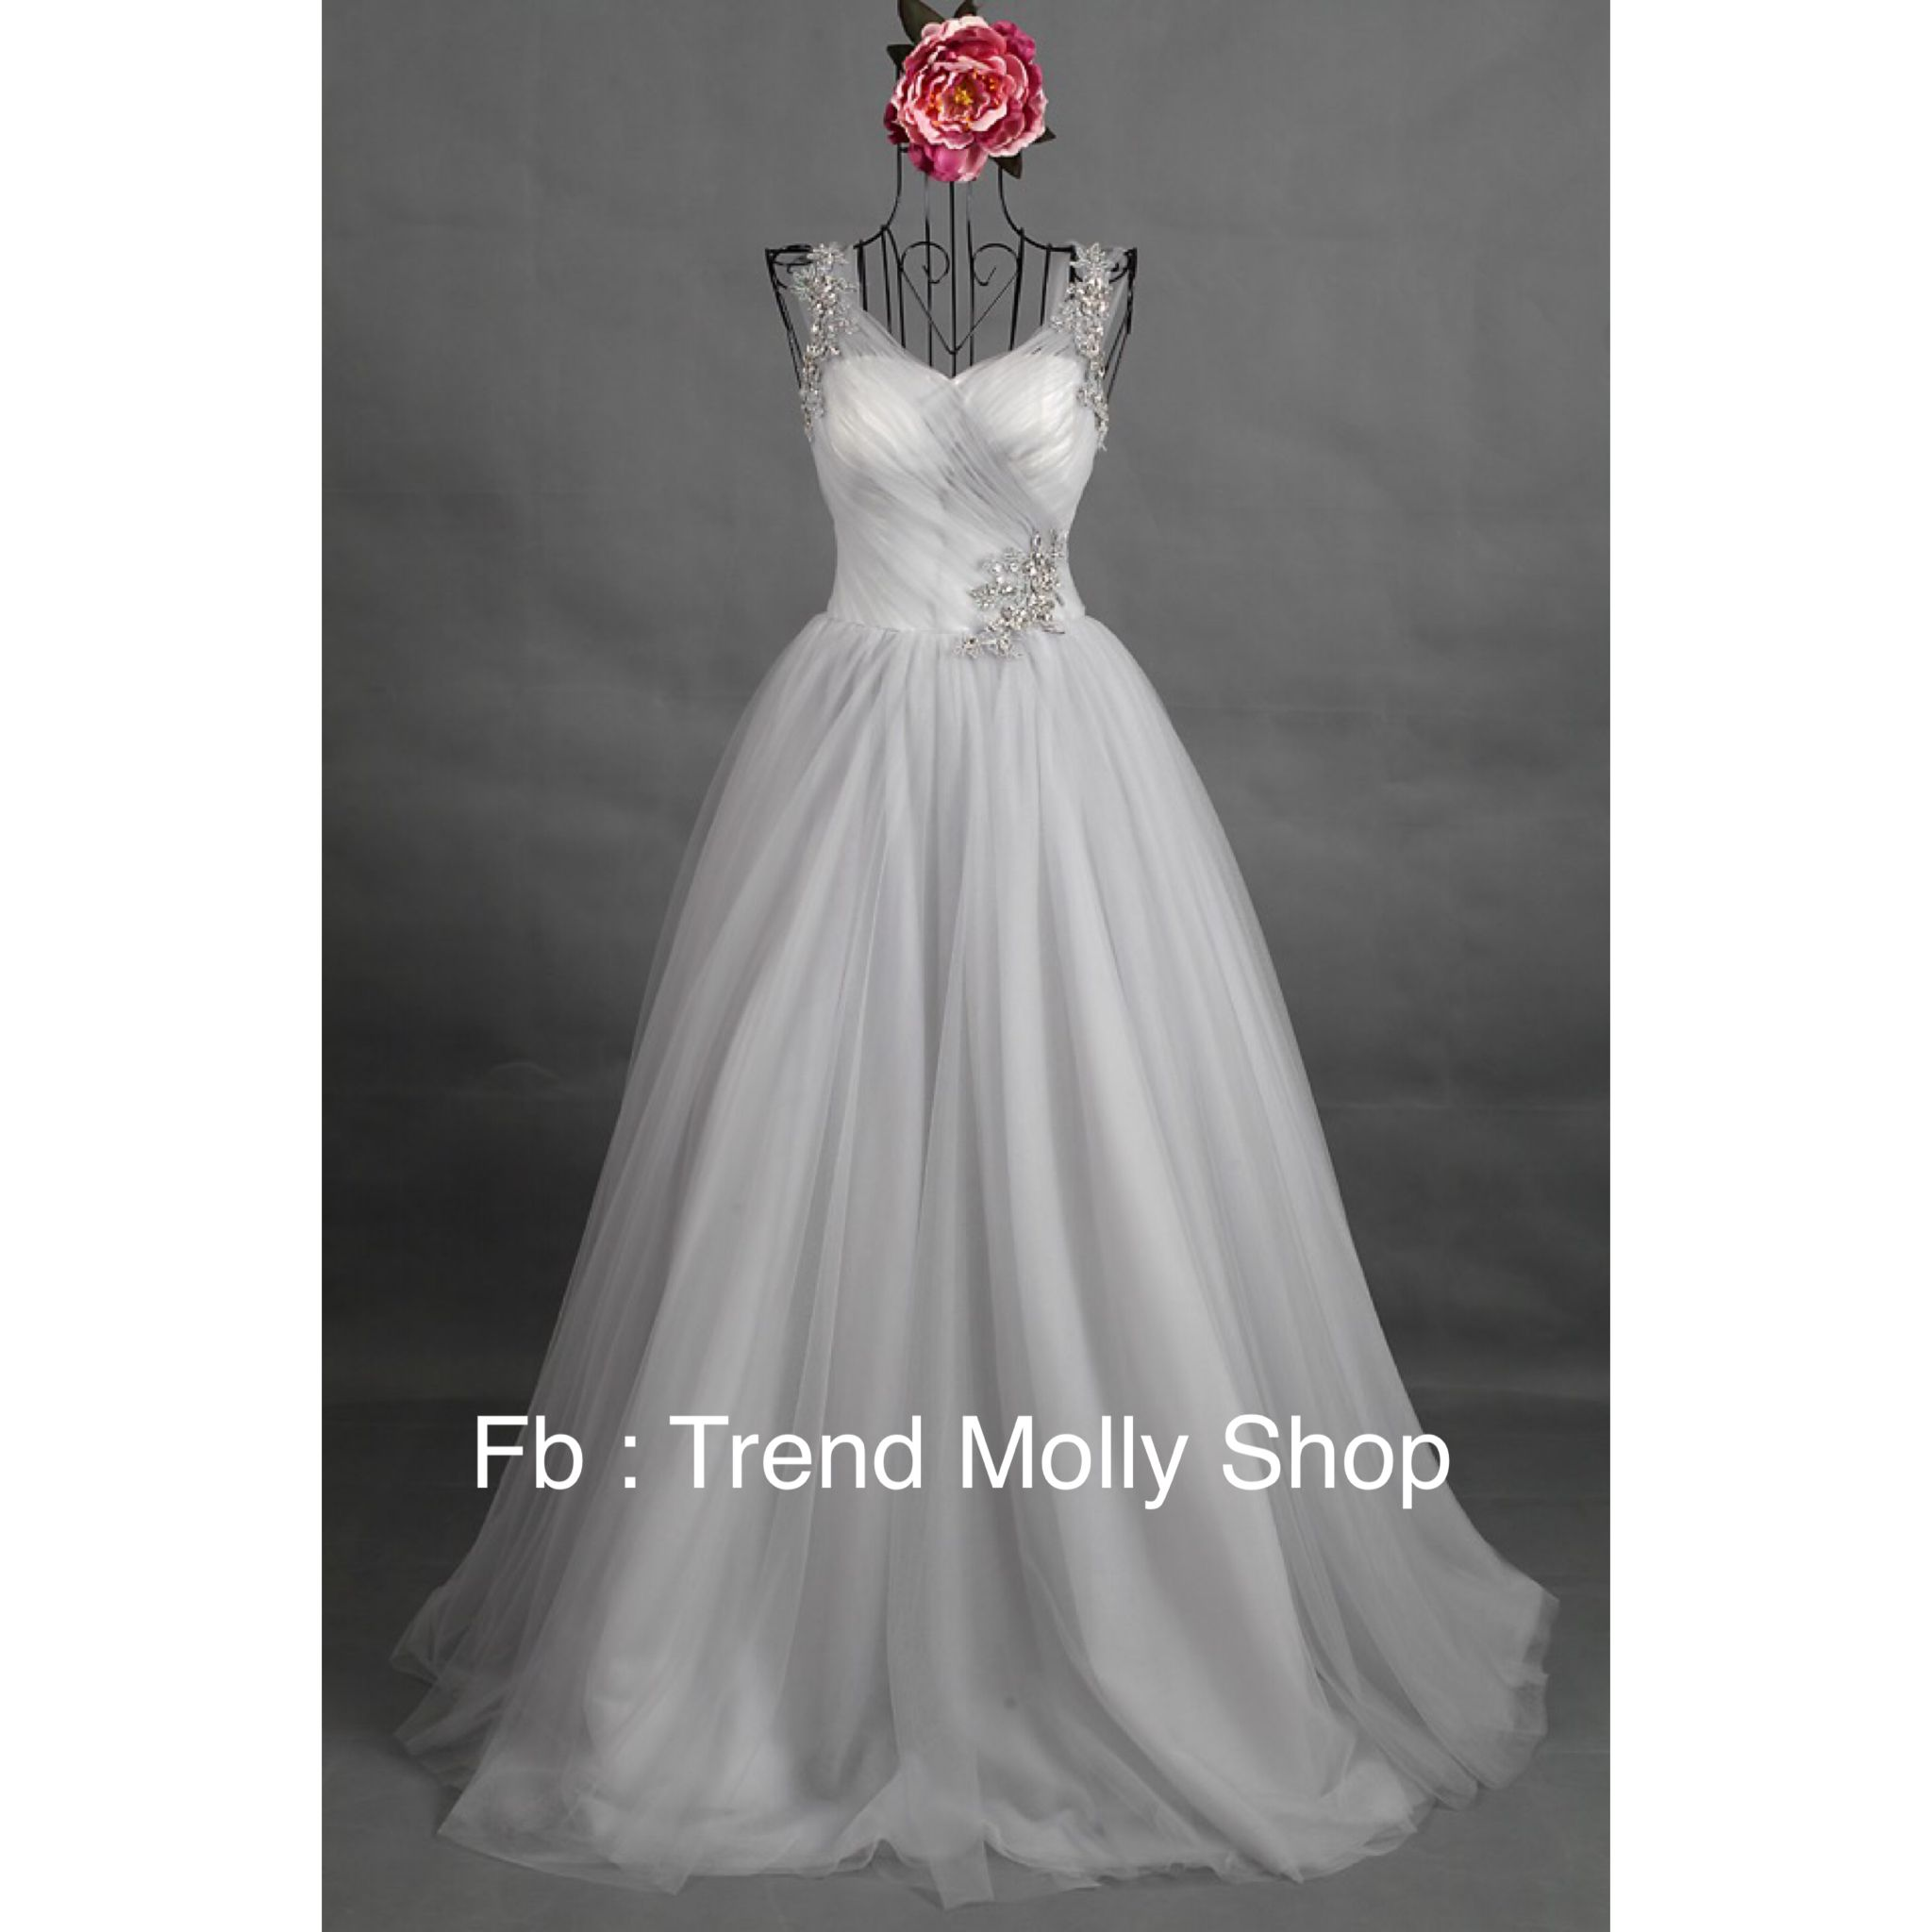 Wedding Dress  Email: Thuhiencircus@gmail.com  Designed , redesign .  https://www.facebook.com/pages/Trend-Molly-Shop/403472529832549